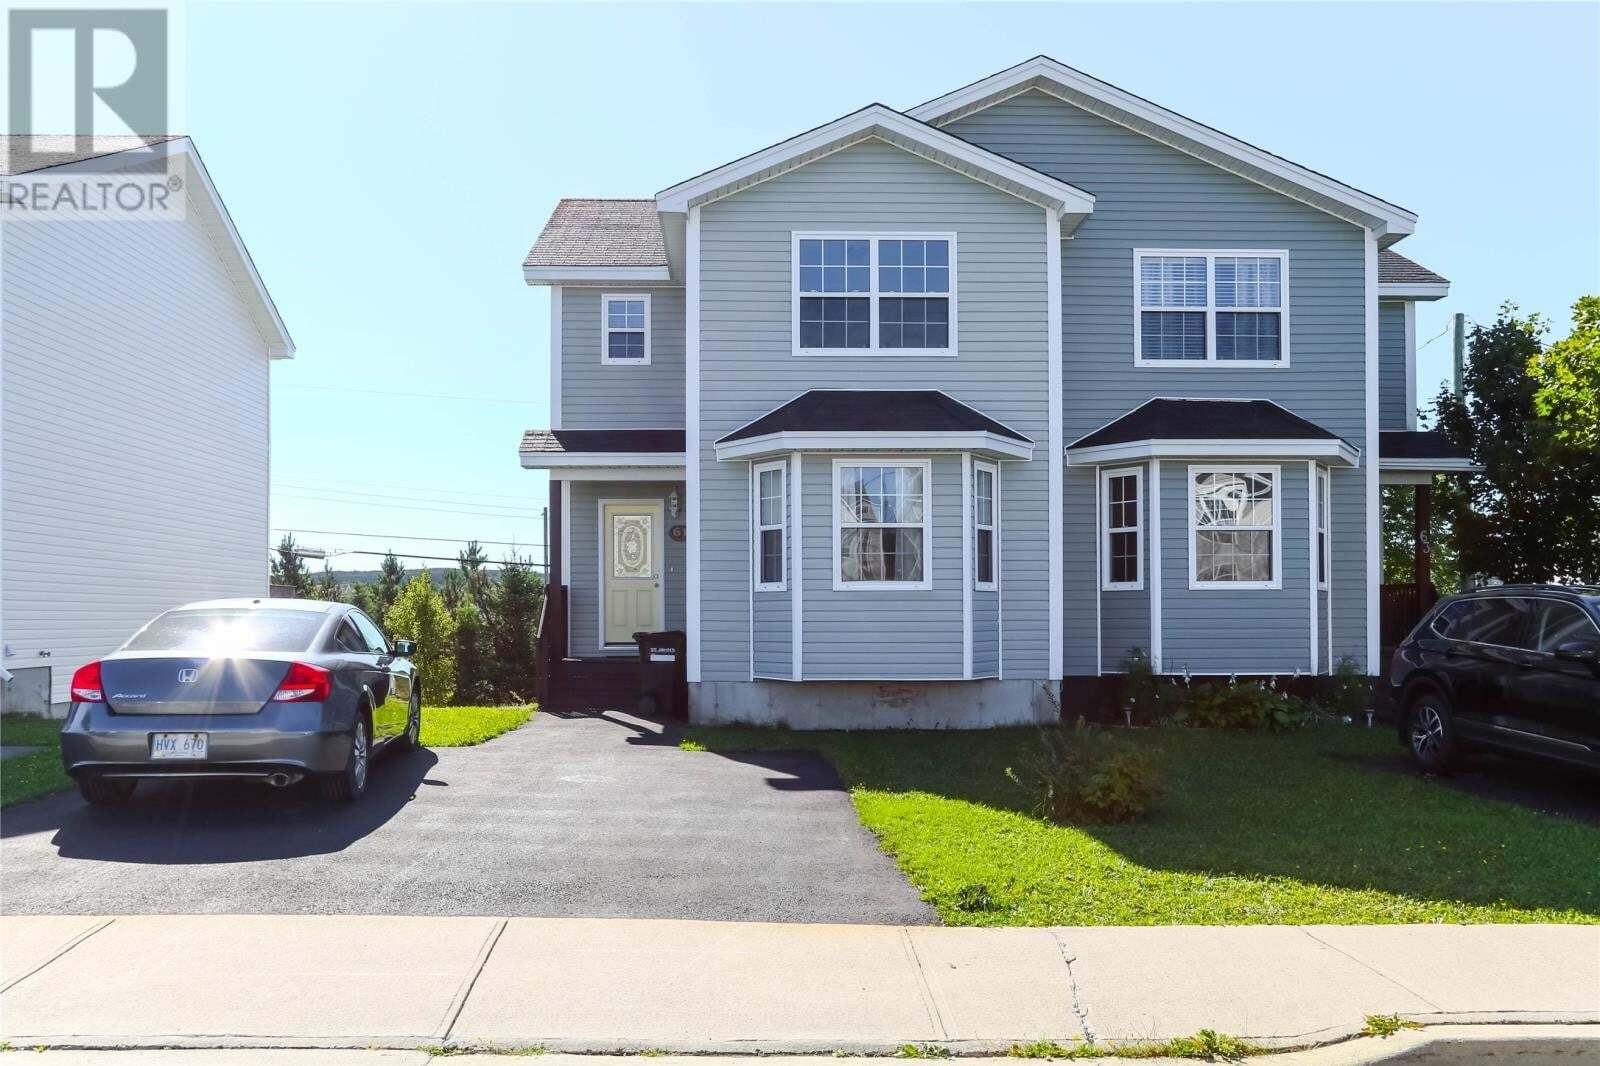 House for sale at 61 Seaborn St St John's Newfoundland - MLS: 1221461